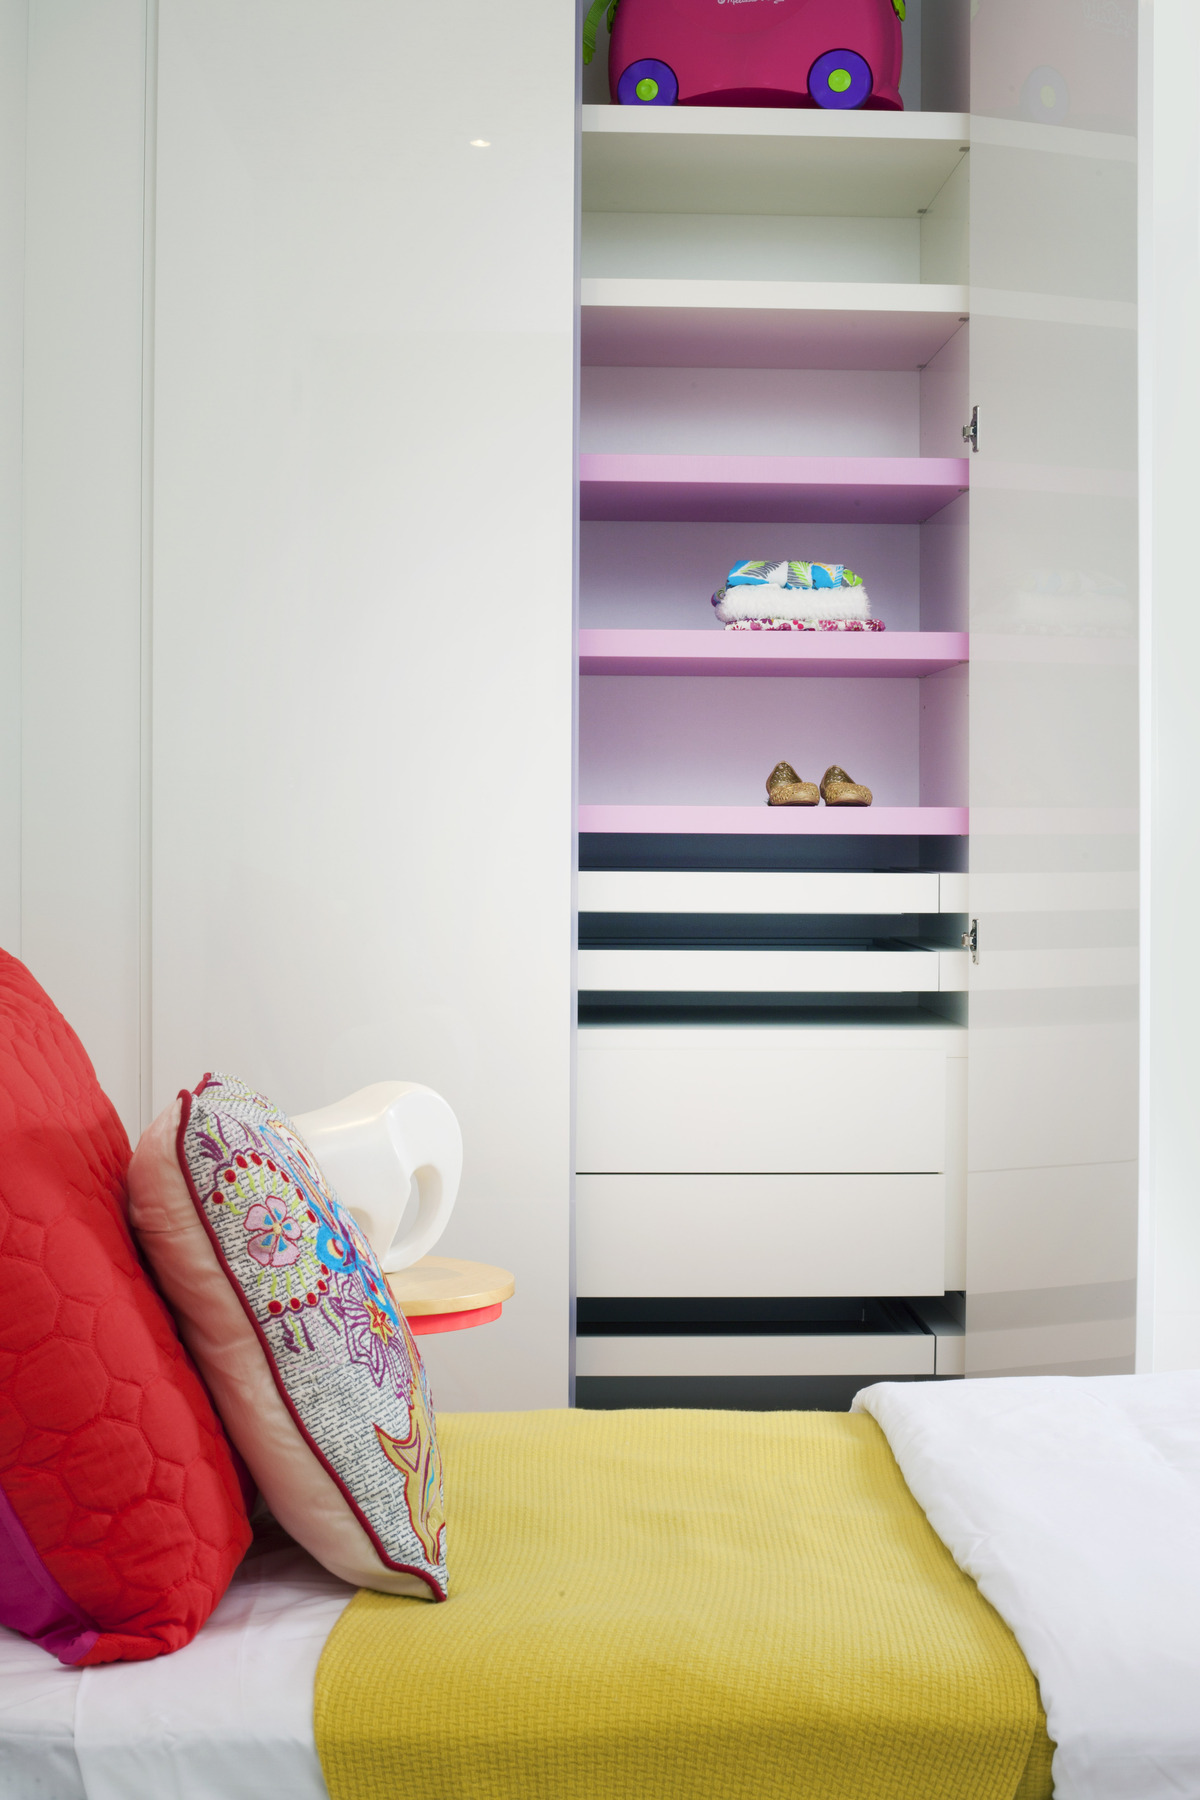 Children's Bedroom / Closet Detail - Miami Interior Design